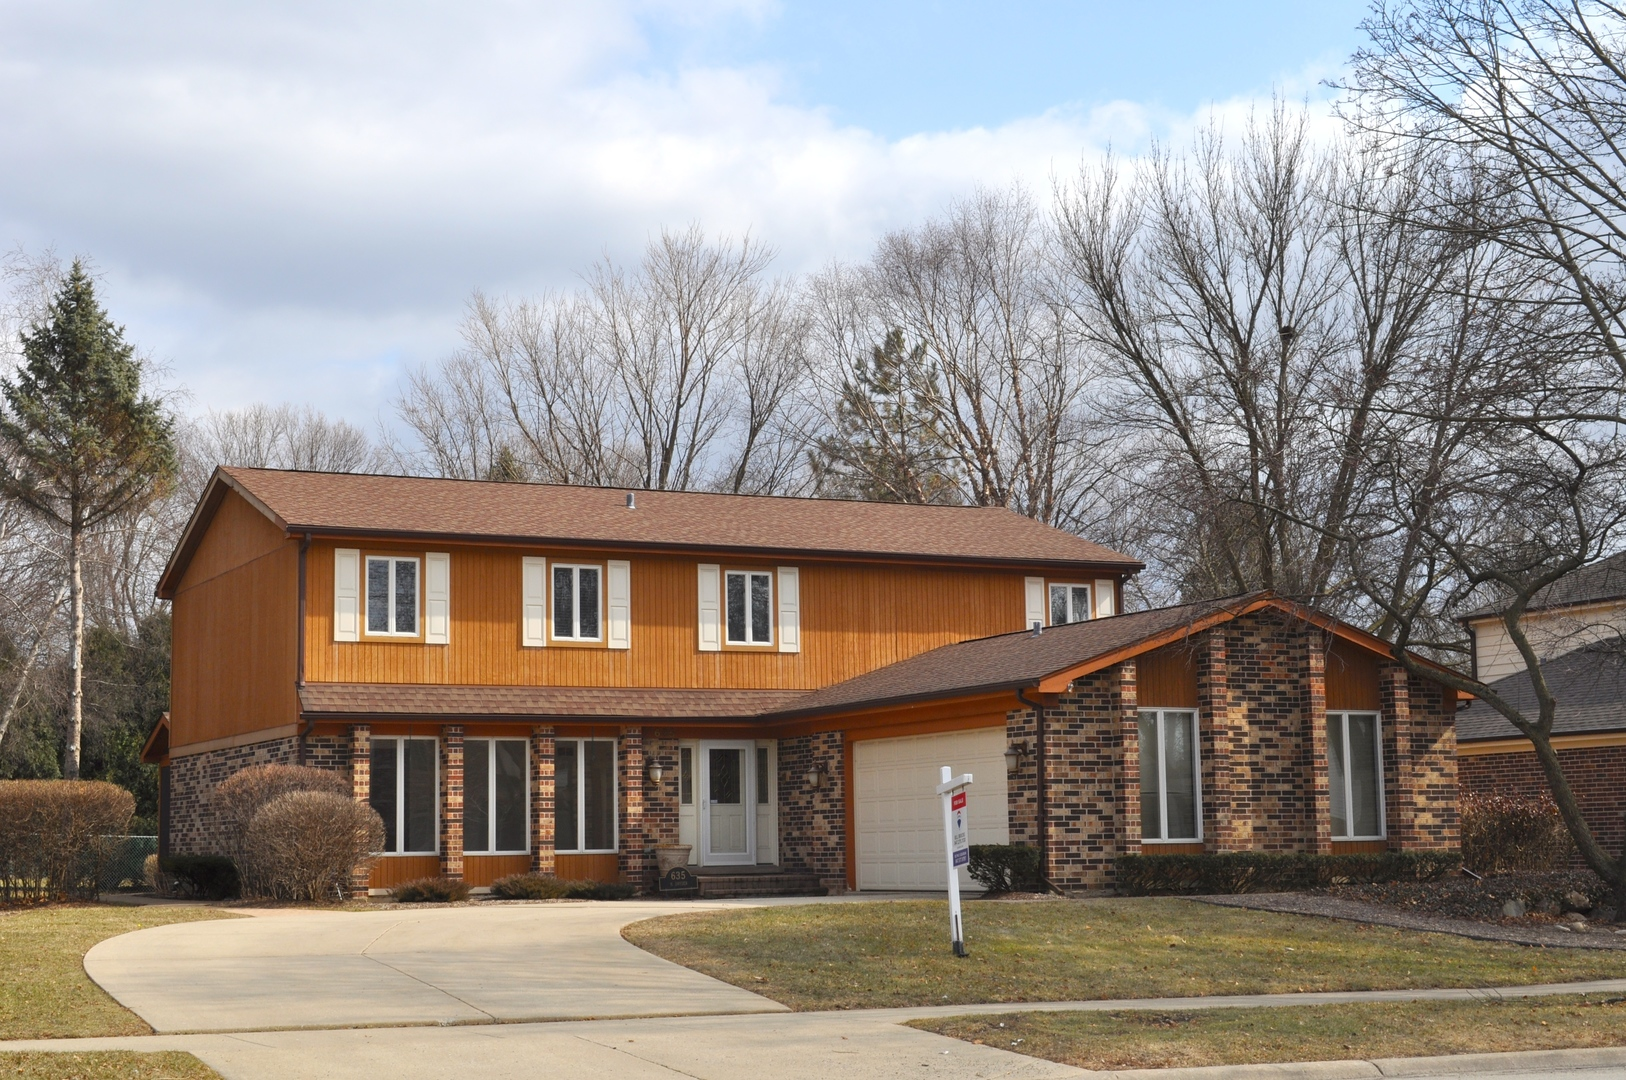 635 North Dryden Avenue, Arlington Heights in Cook County, IL 60004 Home for Sale